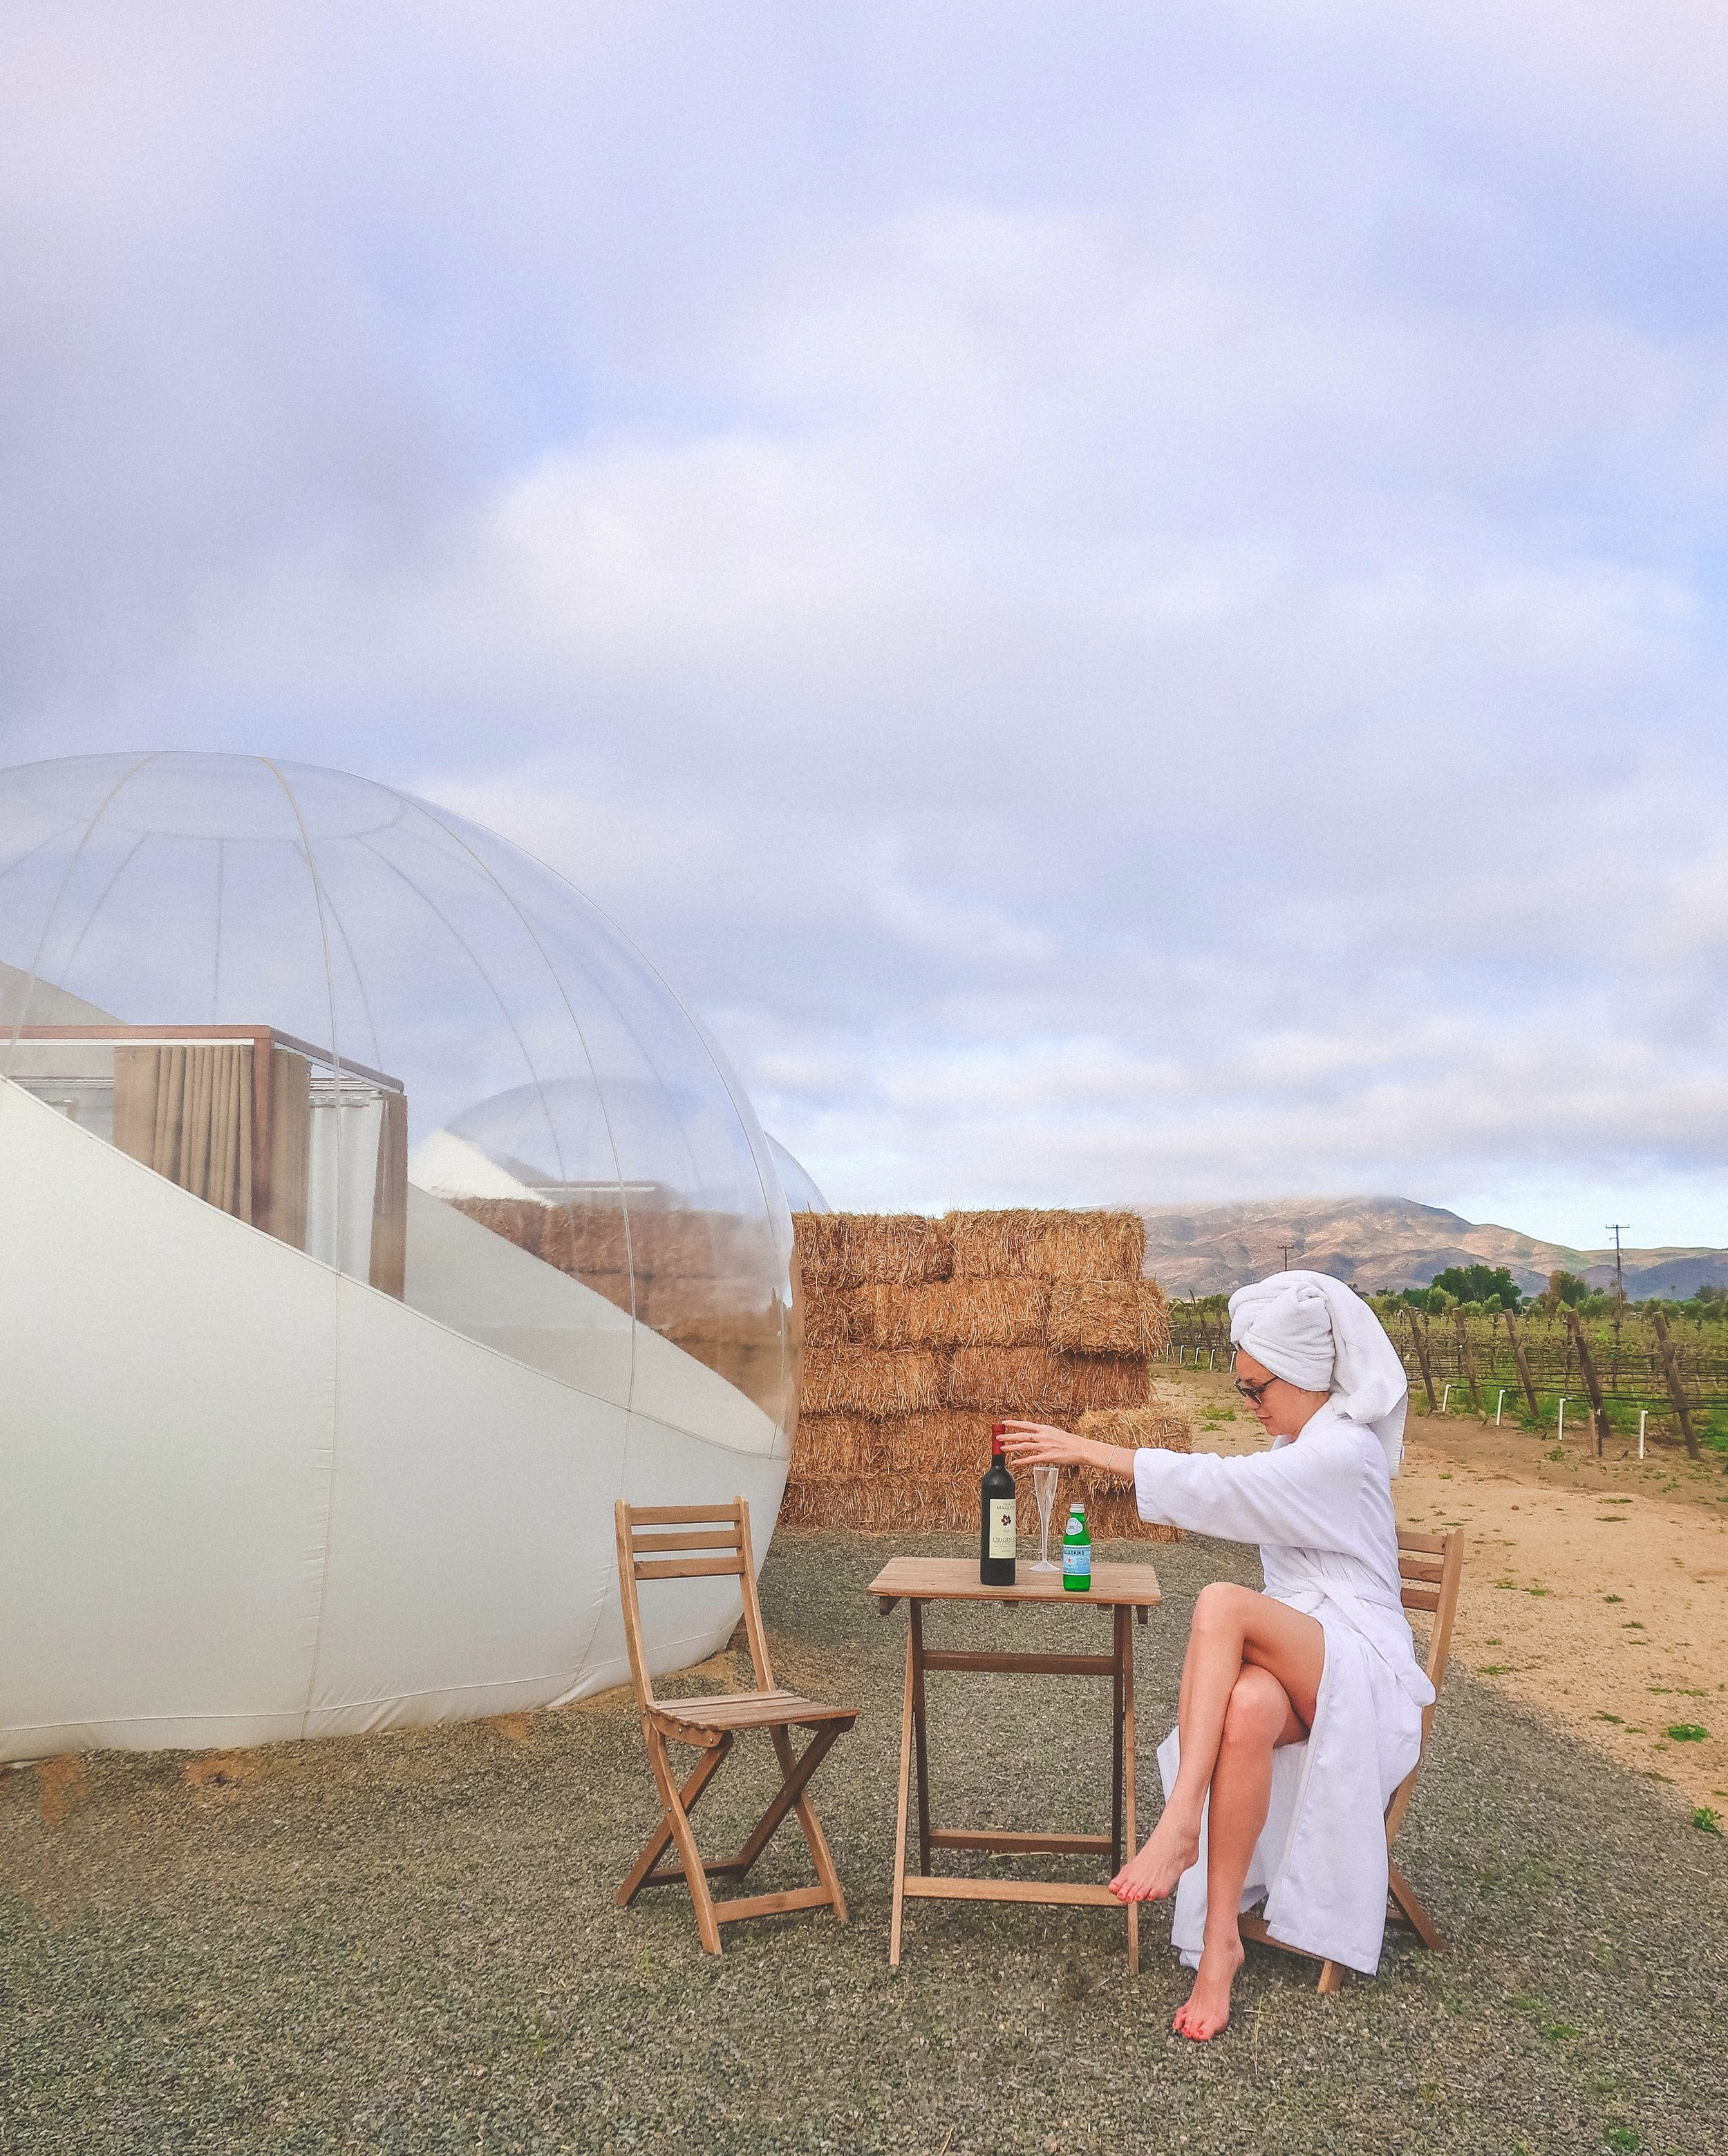 Campera Hotel Burbuja's Bubble Rooms and Suites are separated by haystack walls and face the same direction, allowing for privacy from other guests.